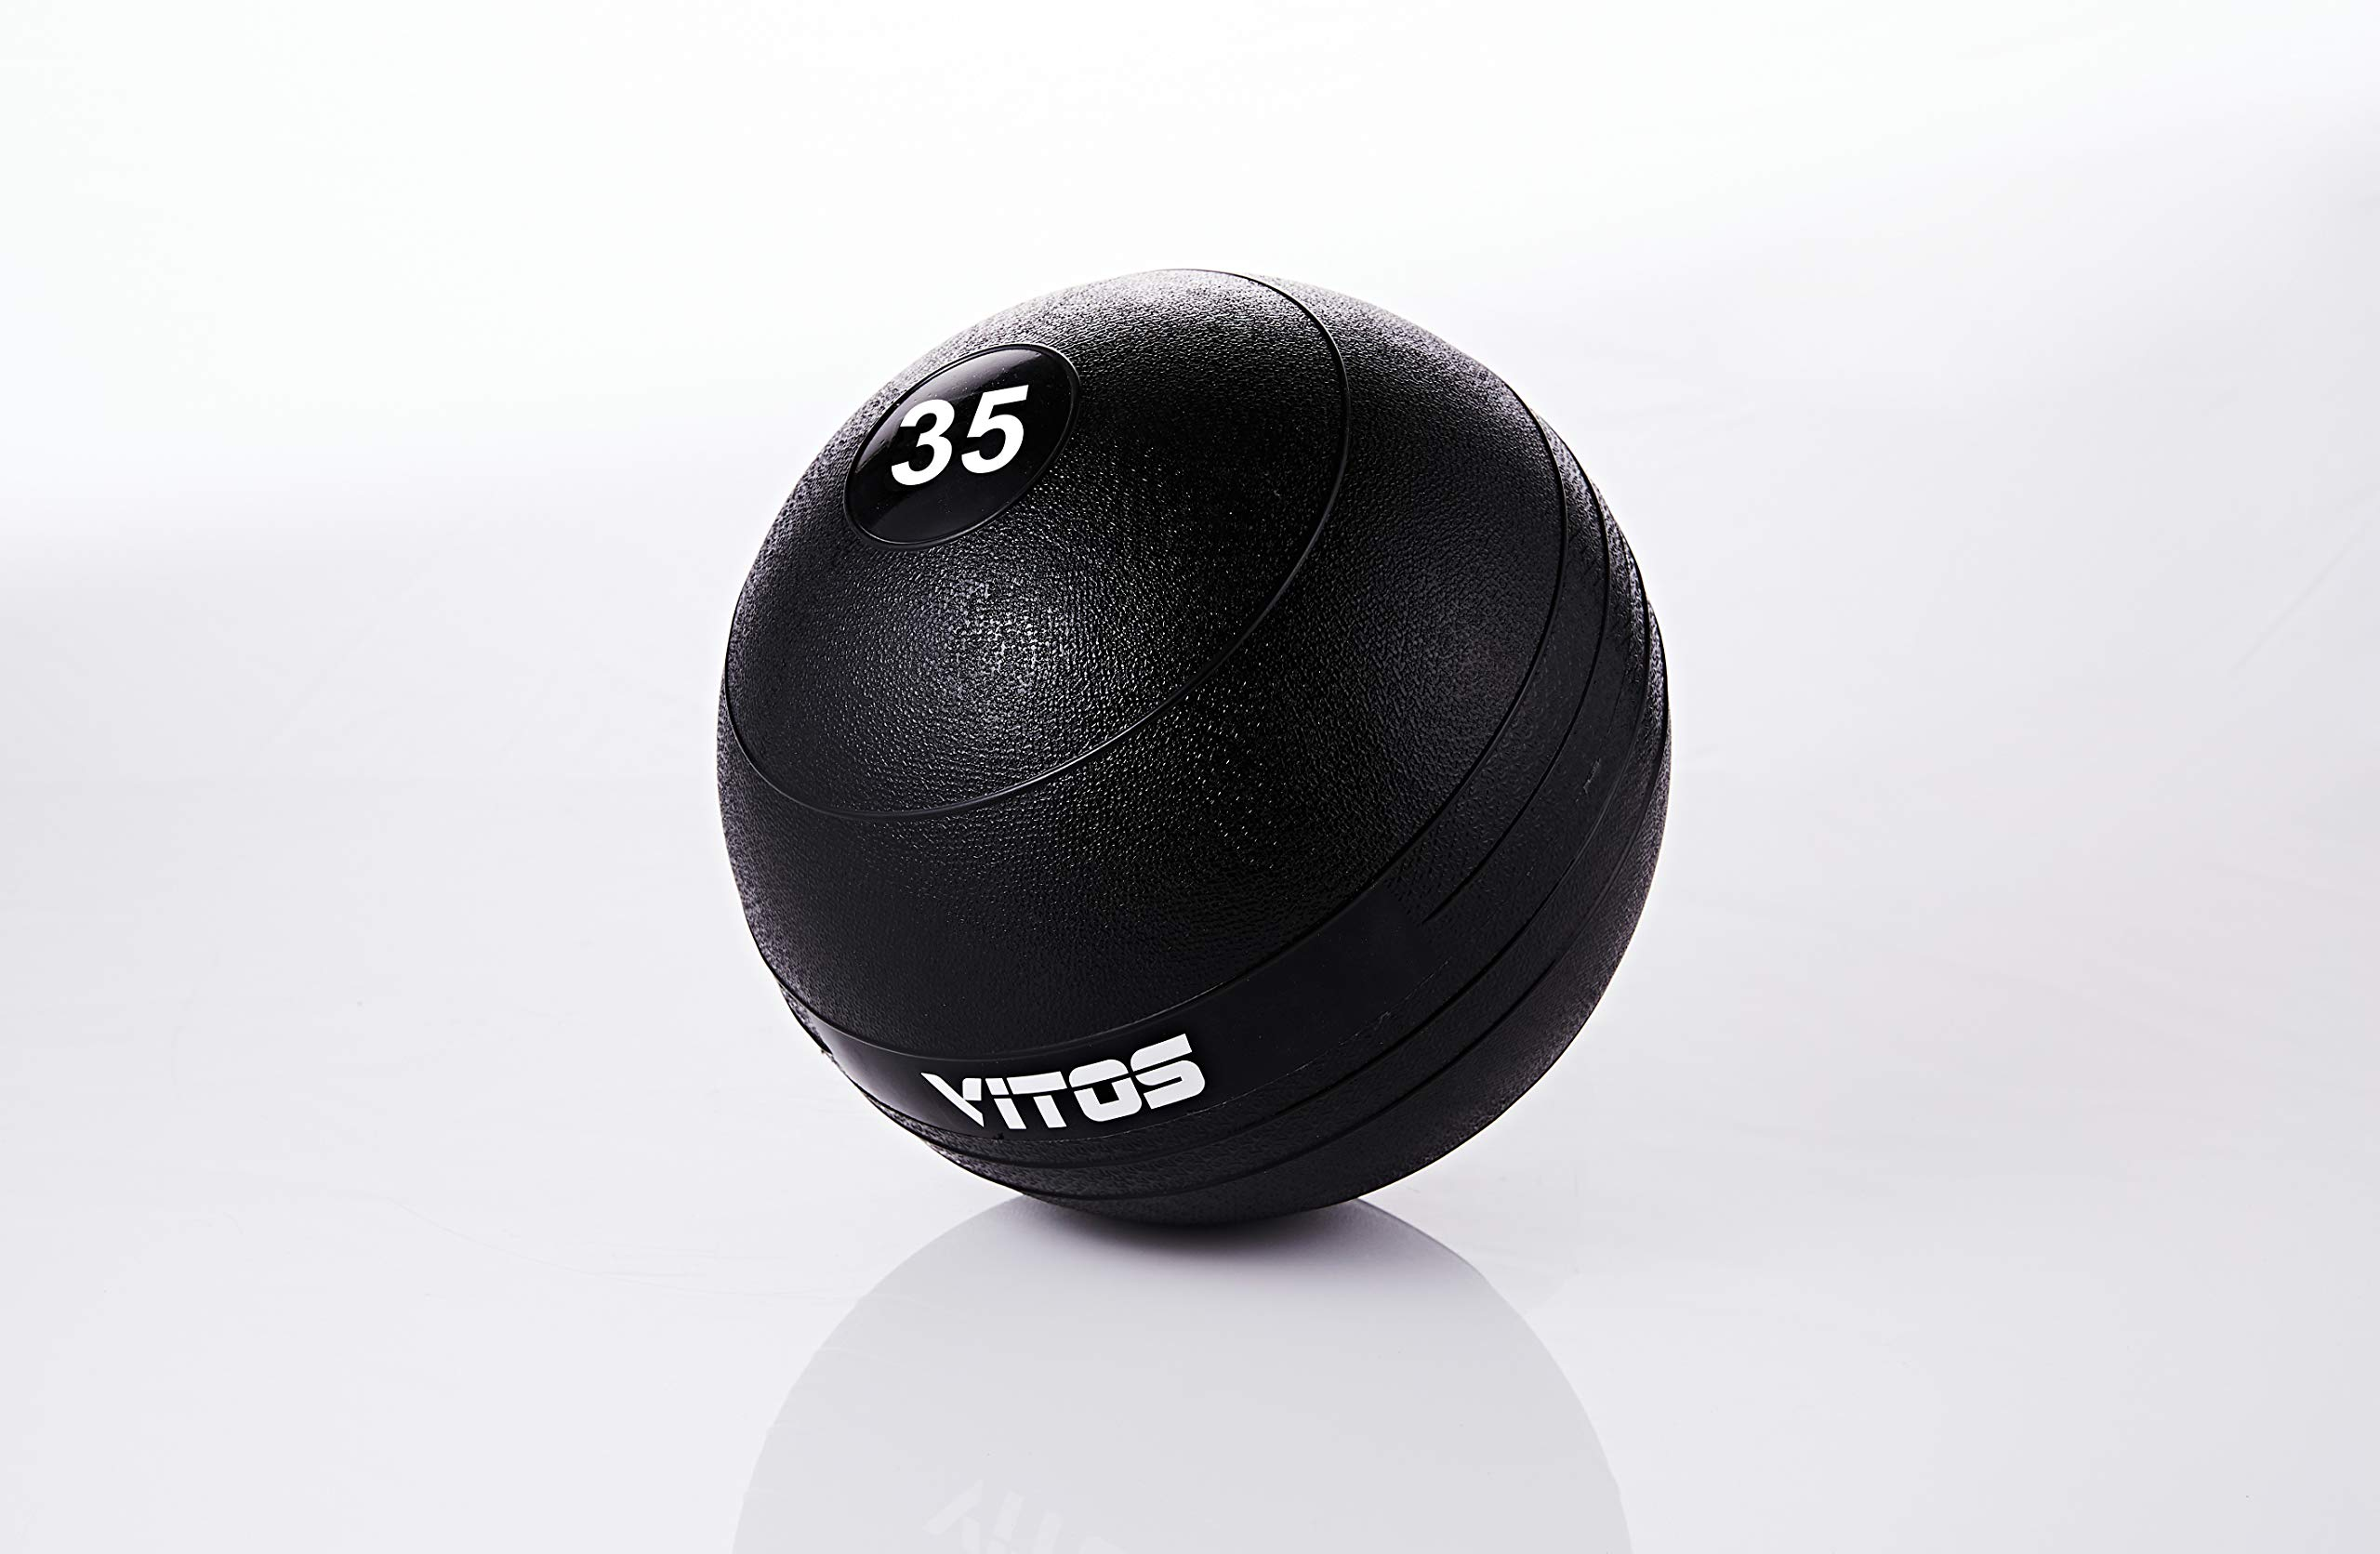 Vitos Fitness Exercise Slam Medicine Ball 10 to 70 Pounds | Durable Weighted Gym Accessory Strength Conditioning Cross Training Core Squats Lunges Spike Ball Rubber Weight Workout (35)